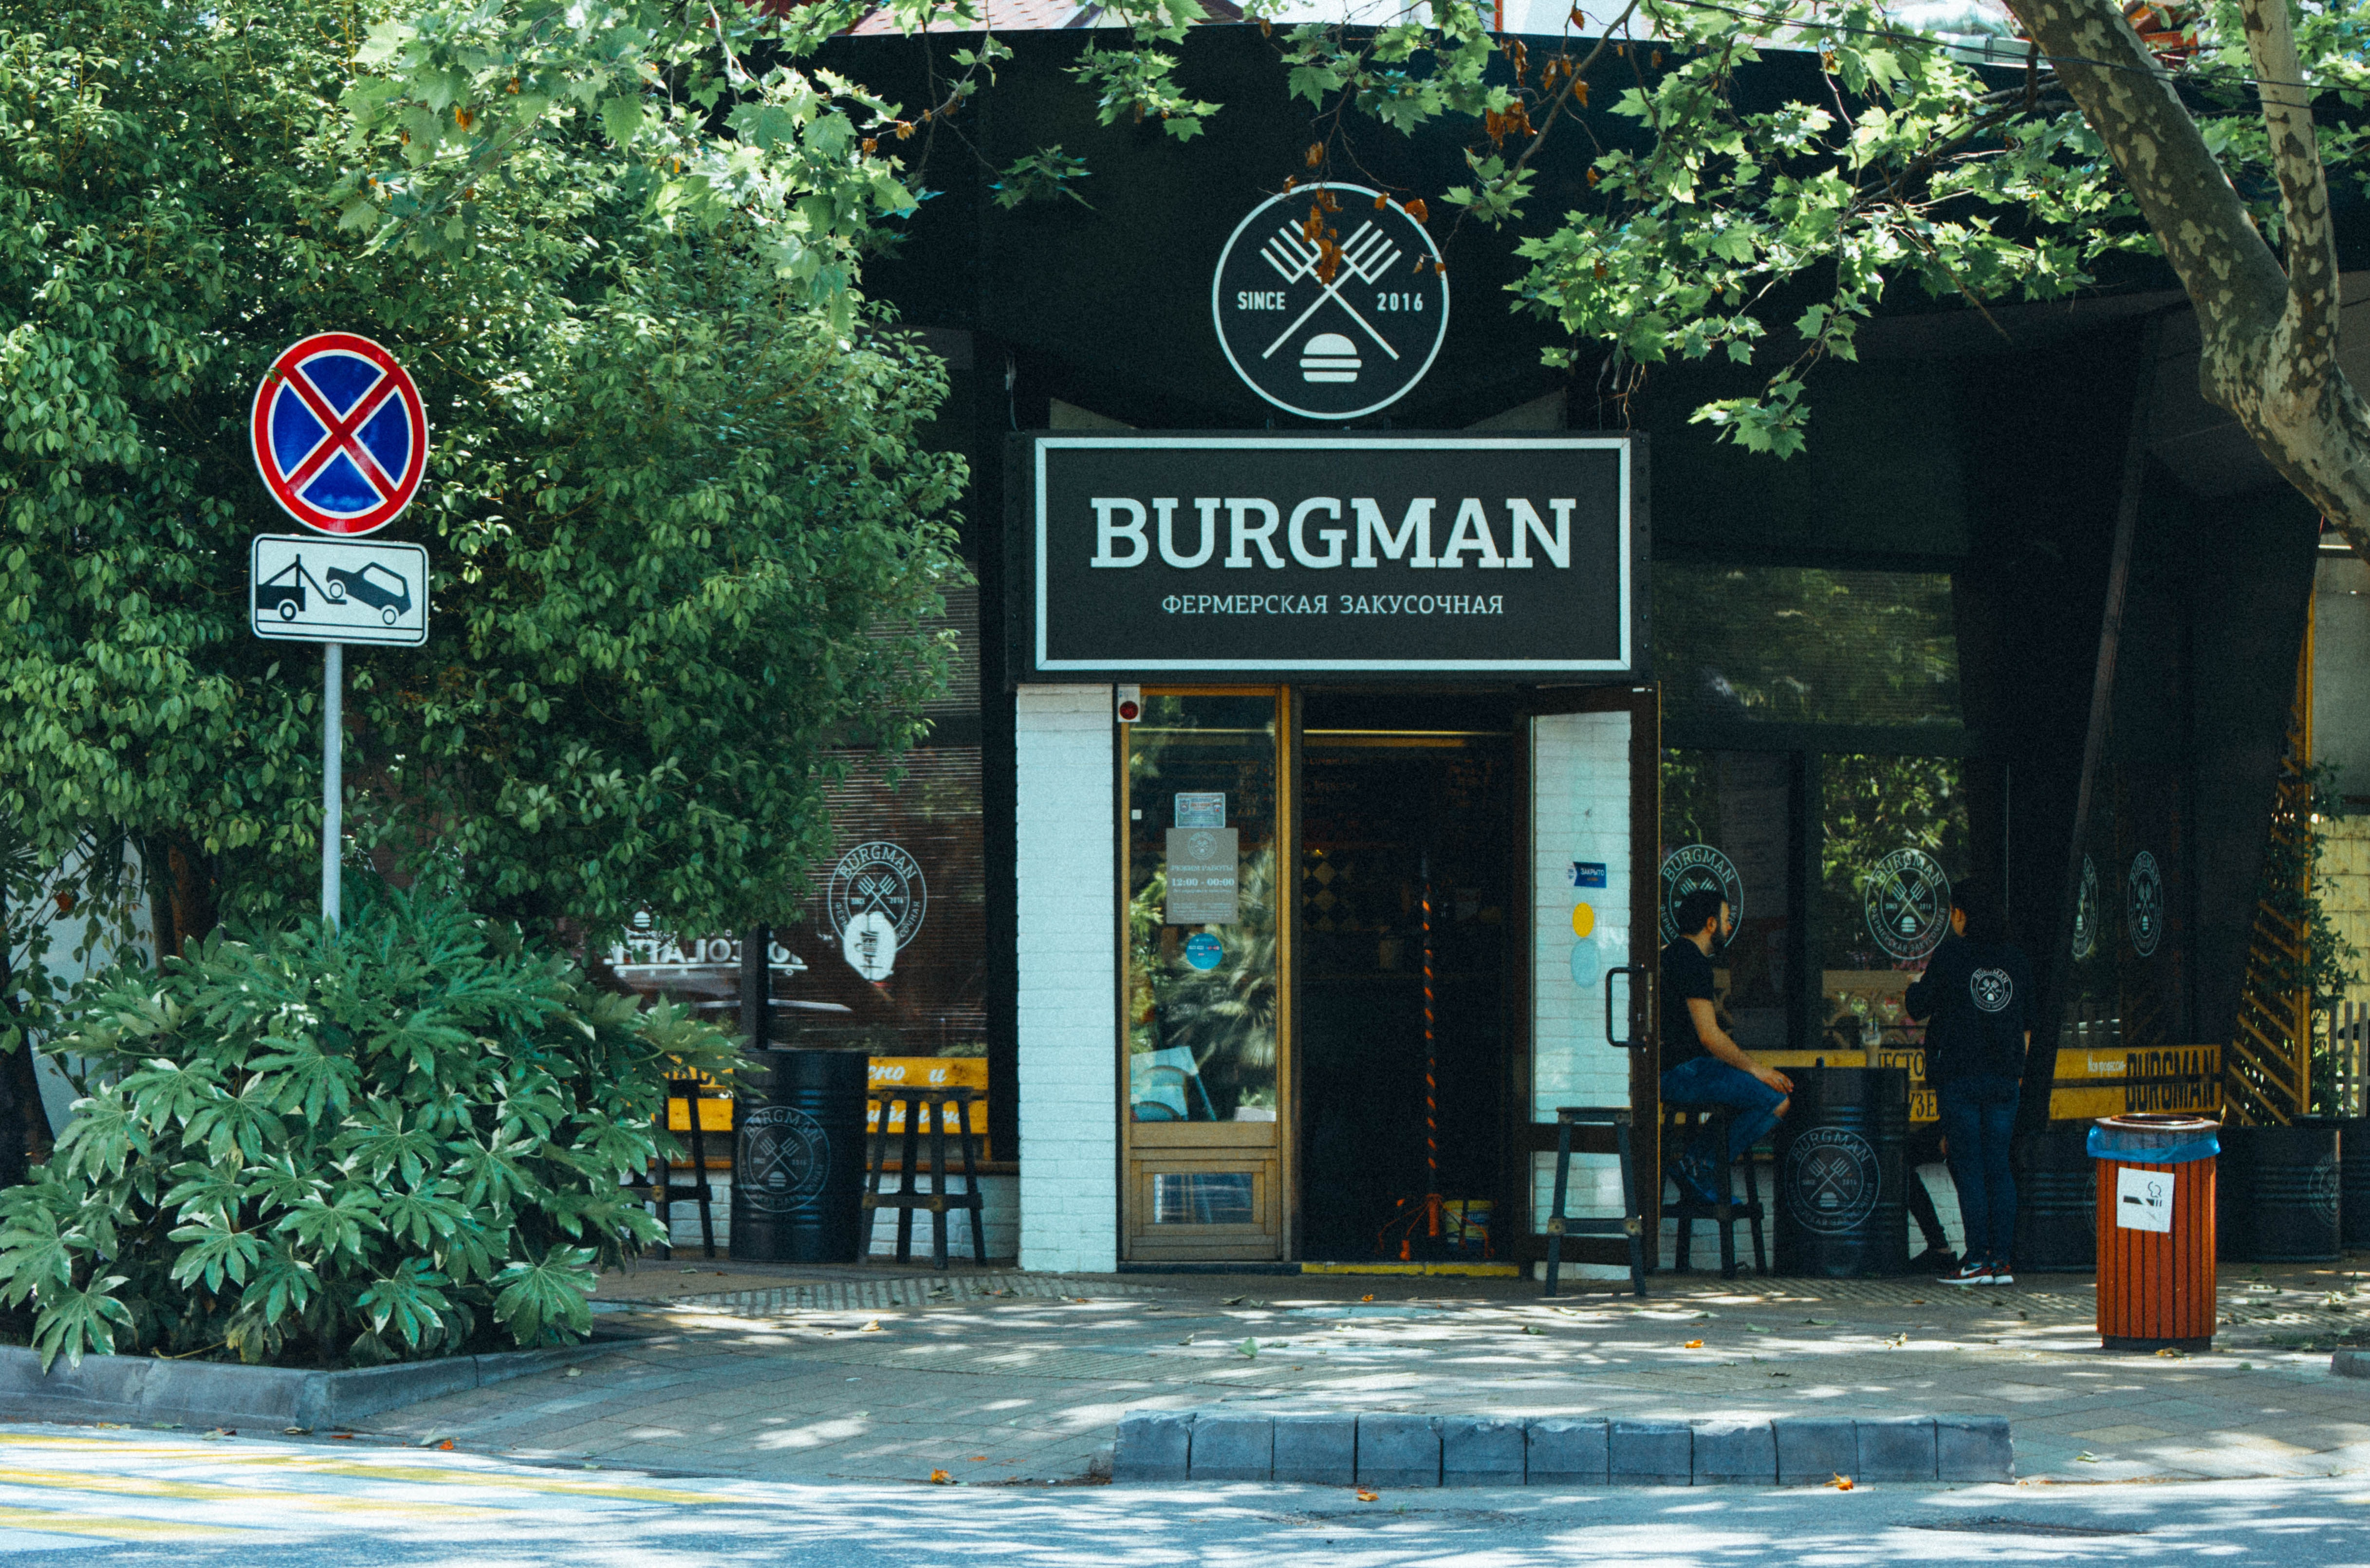 Burgman Boutique, Business, Trees, Trash can, Traffic sign, HQ Photo